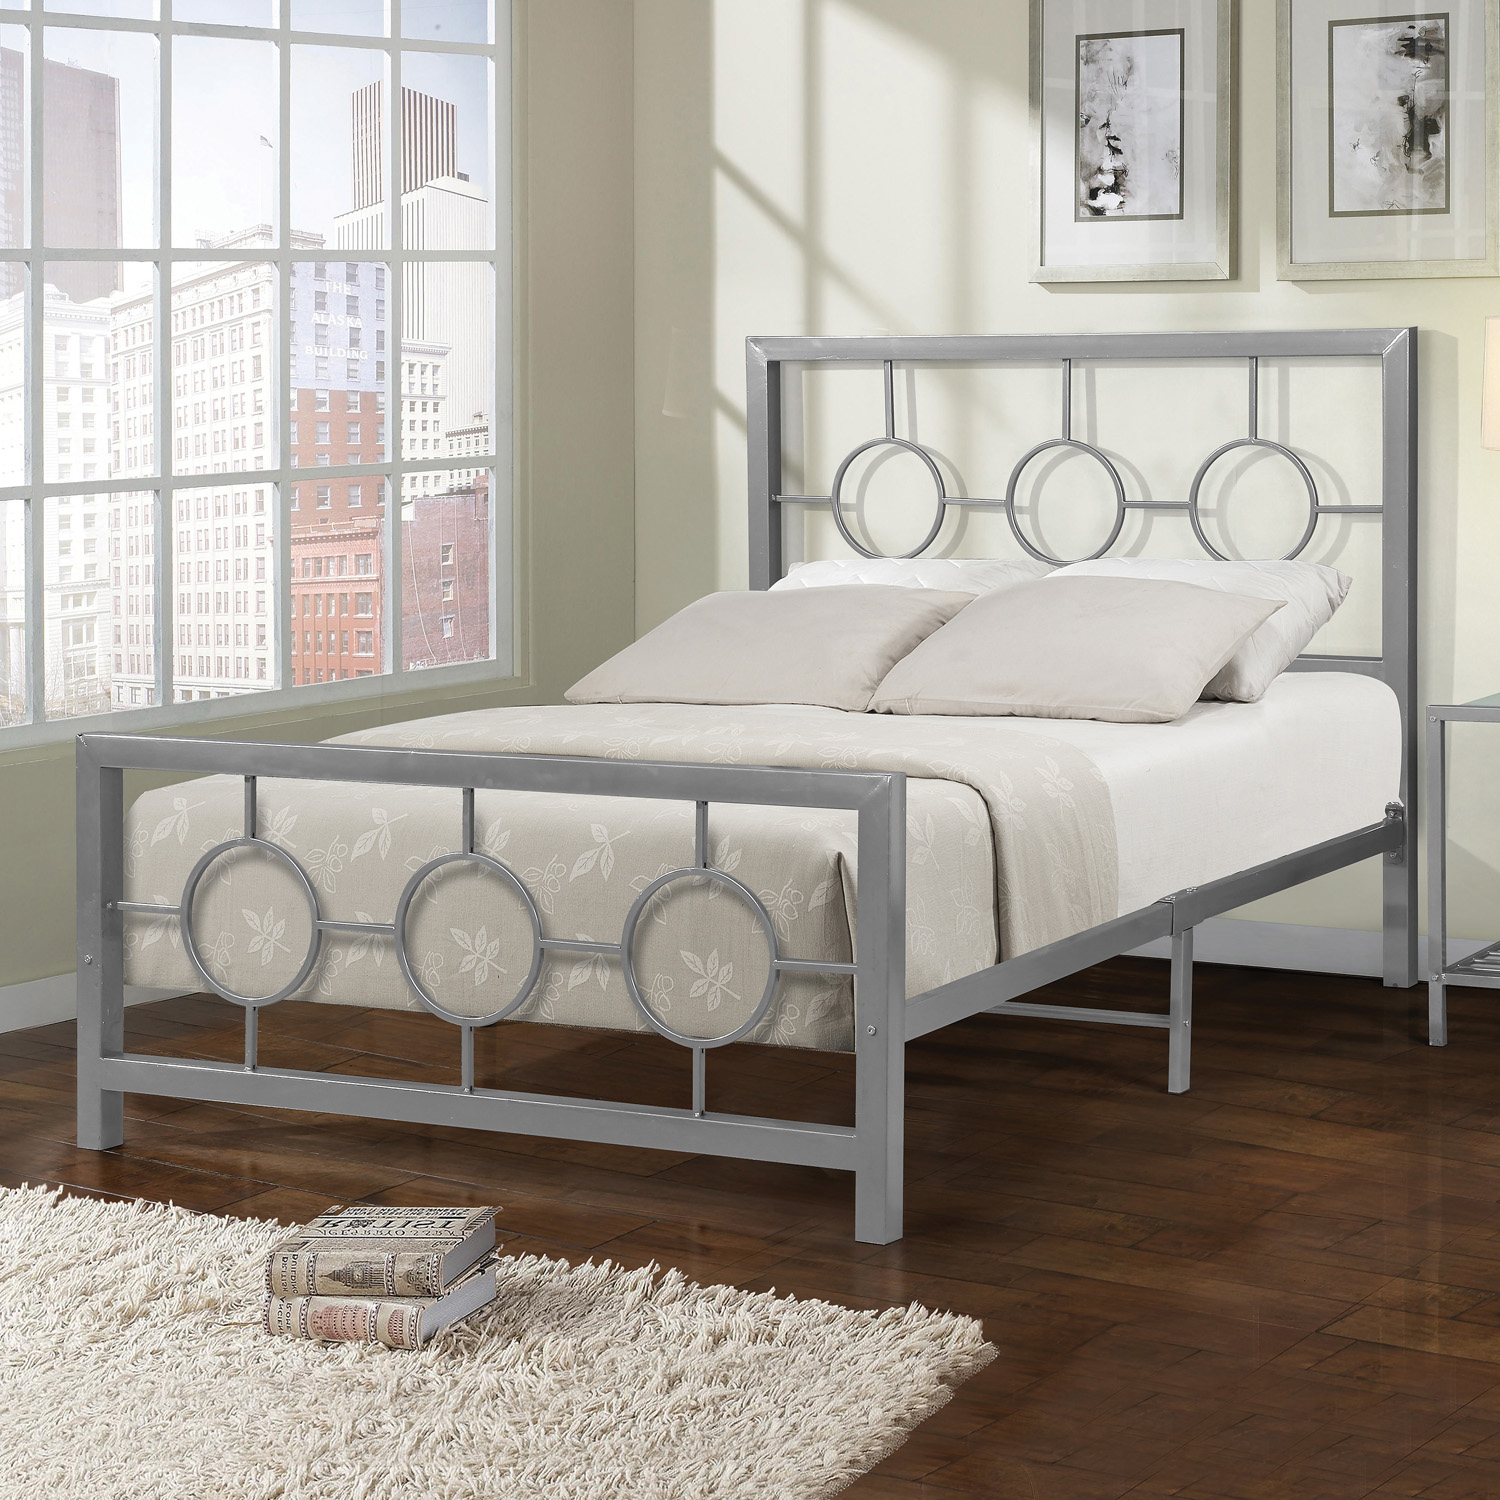 Home Source Eternity Metal Circle Design Full Bed Frame ...